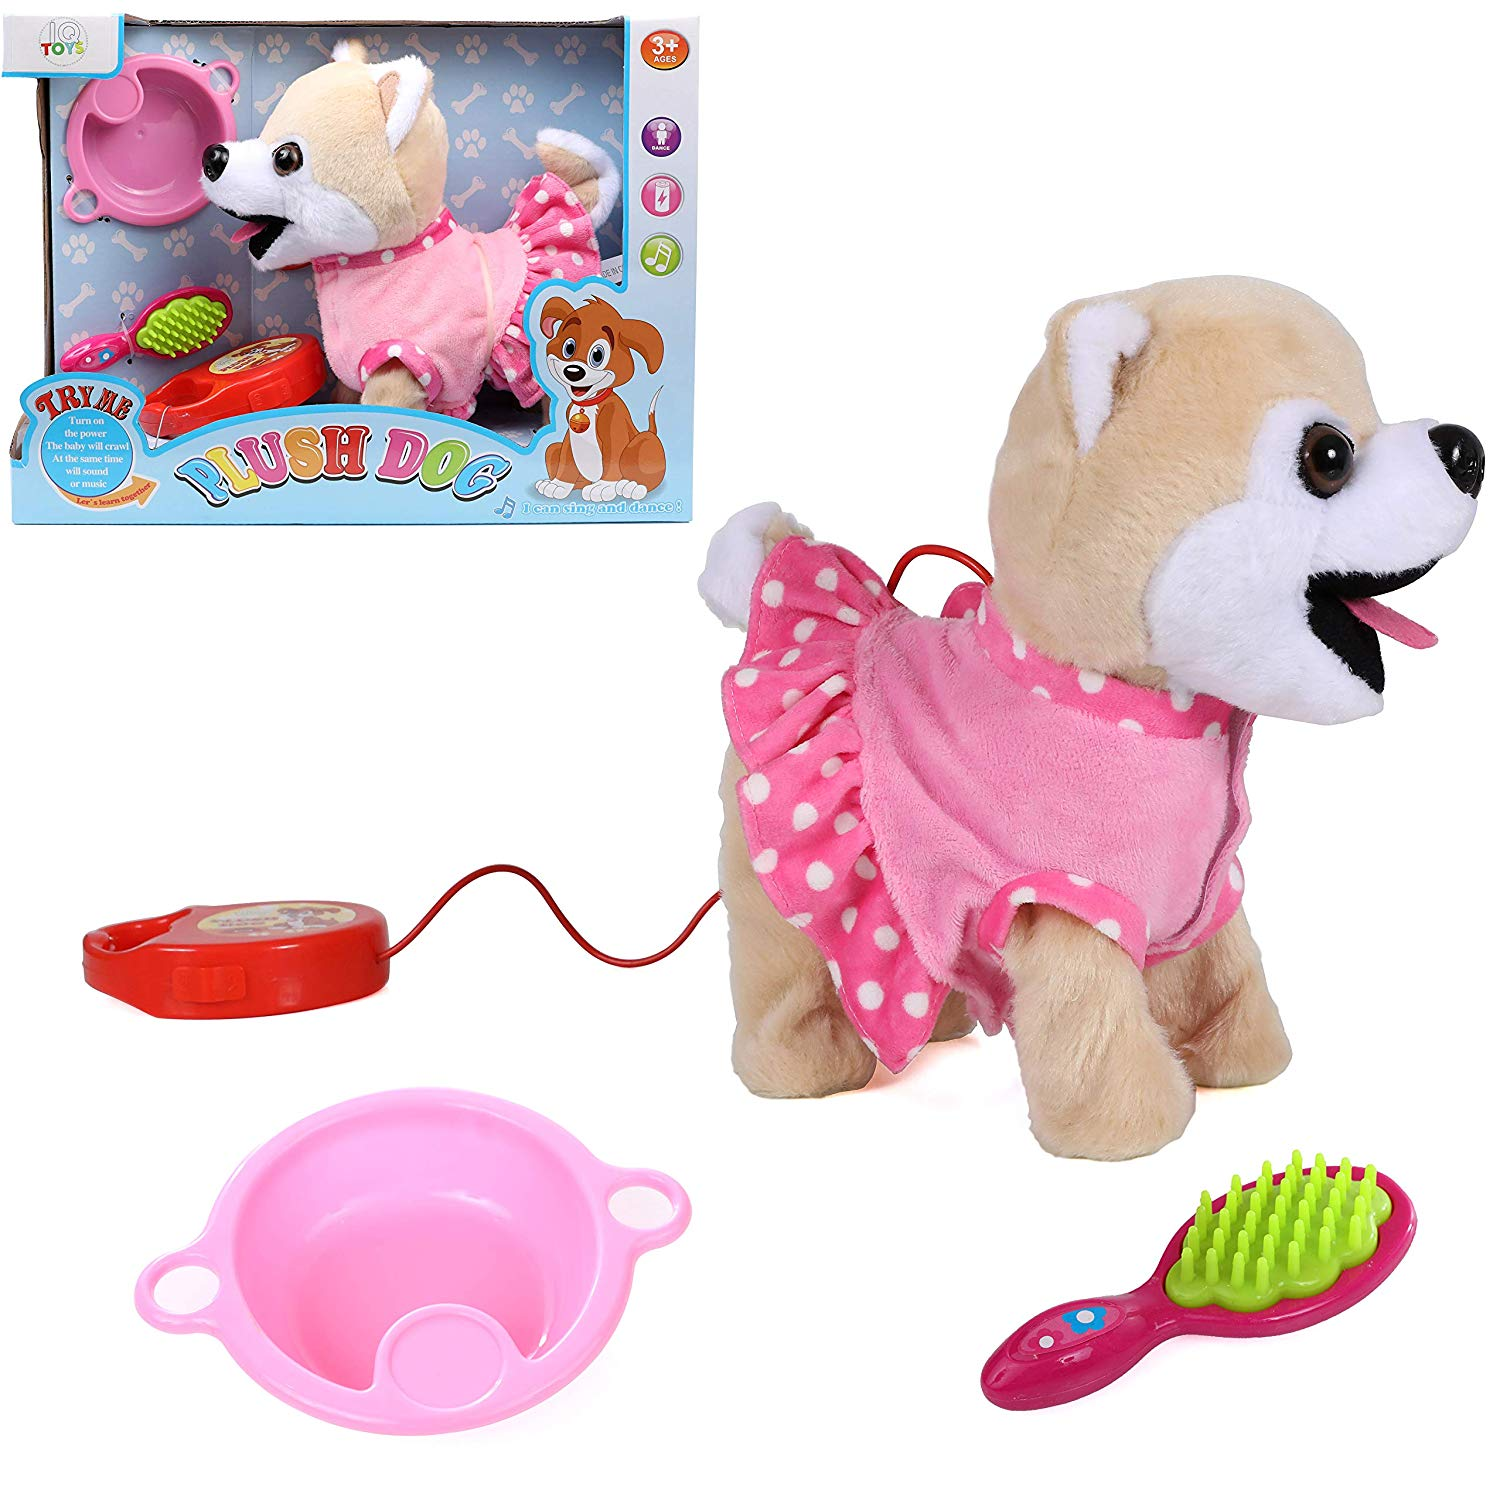 IQ Toys Remote Control Pet Dog Walking and Barking Plush Puppy Dog with Leash, and 2 Puppy Care Accessories